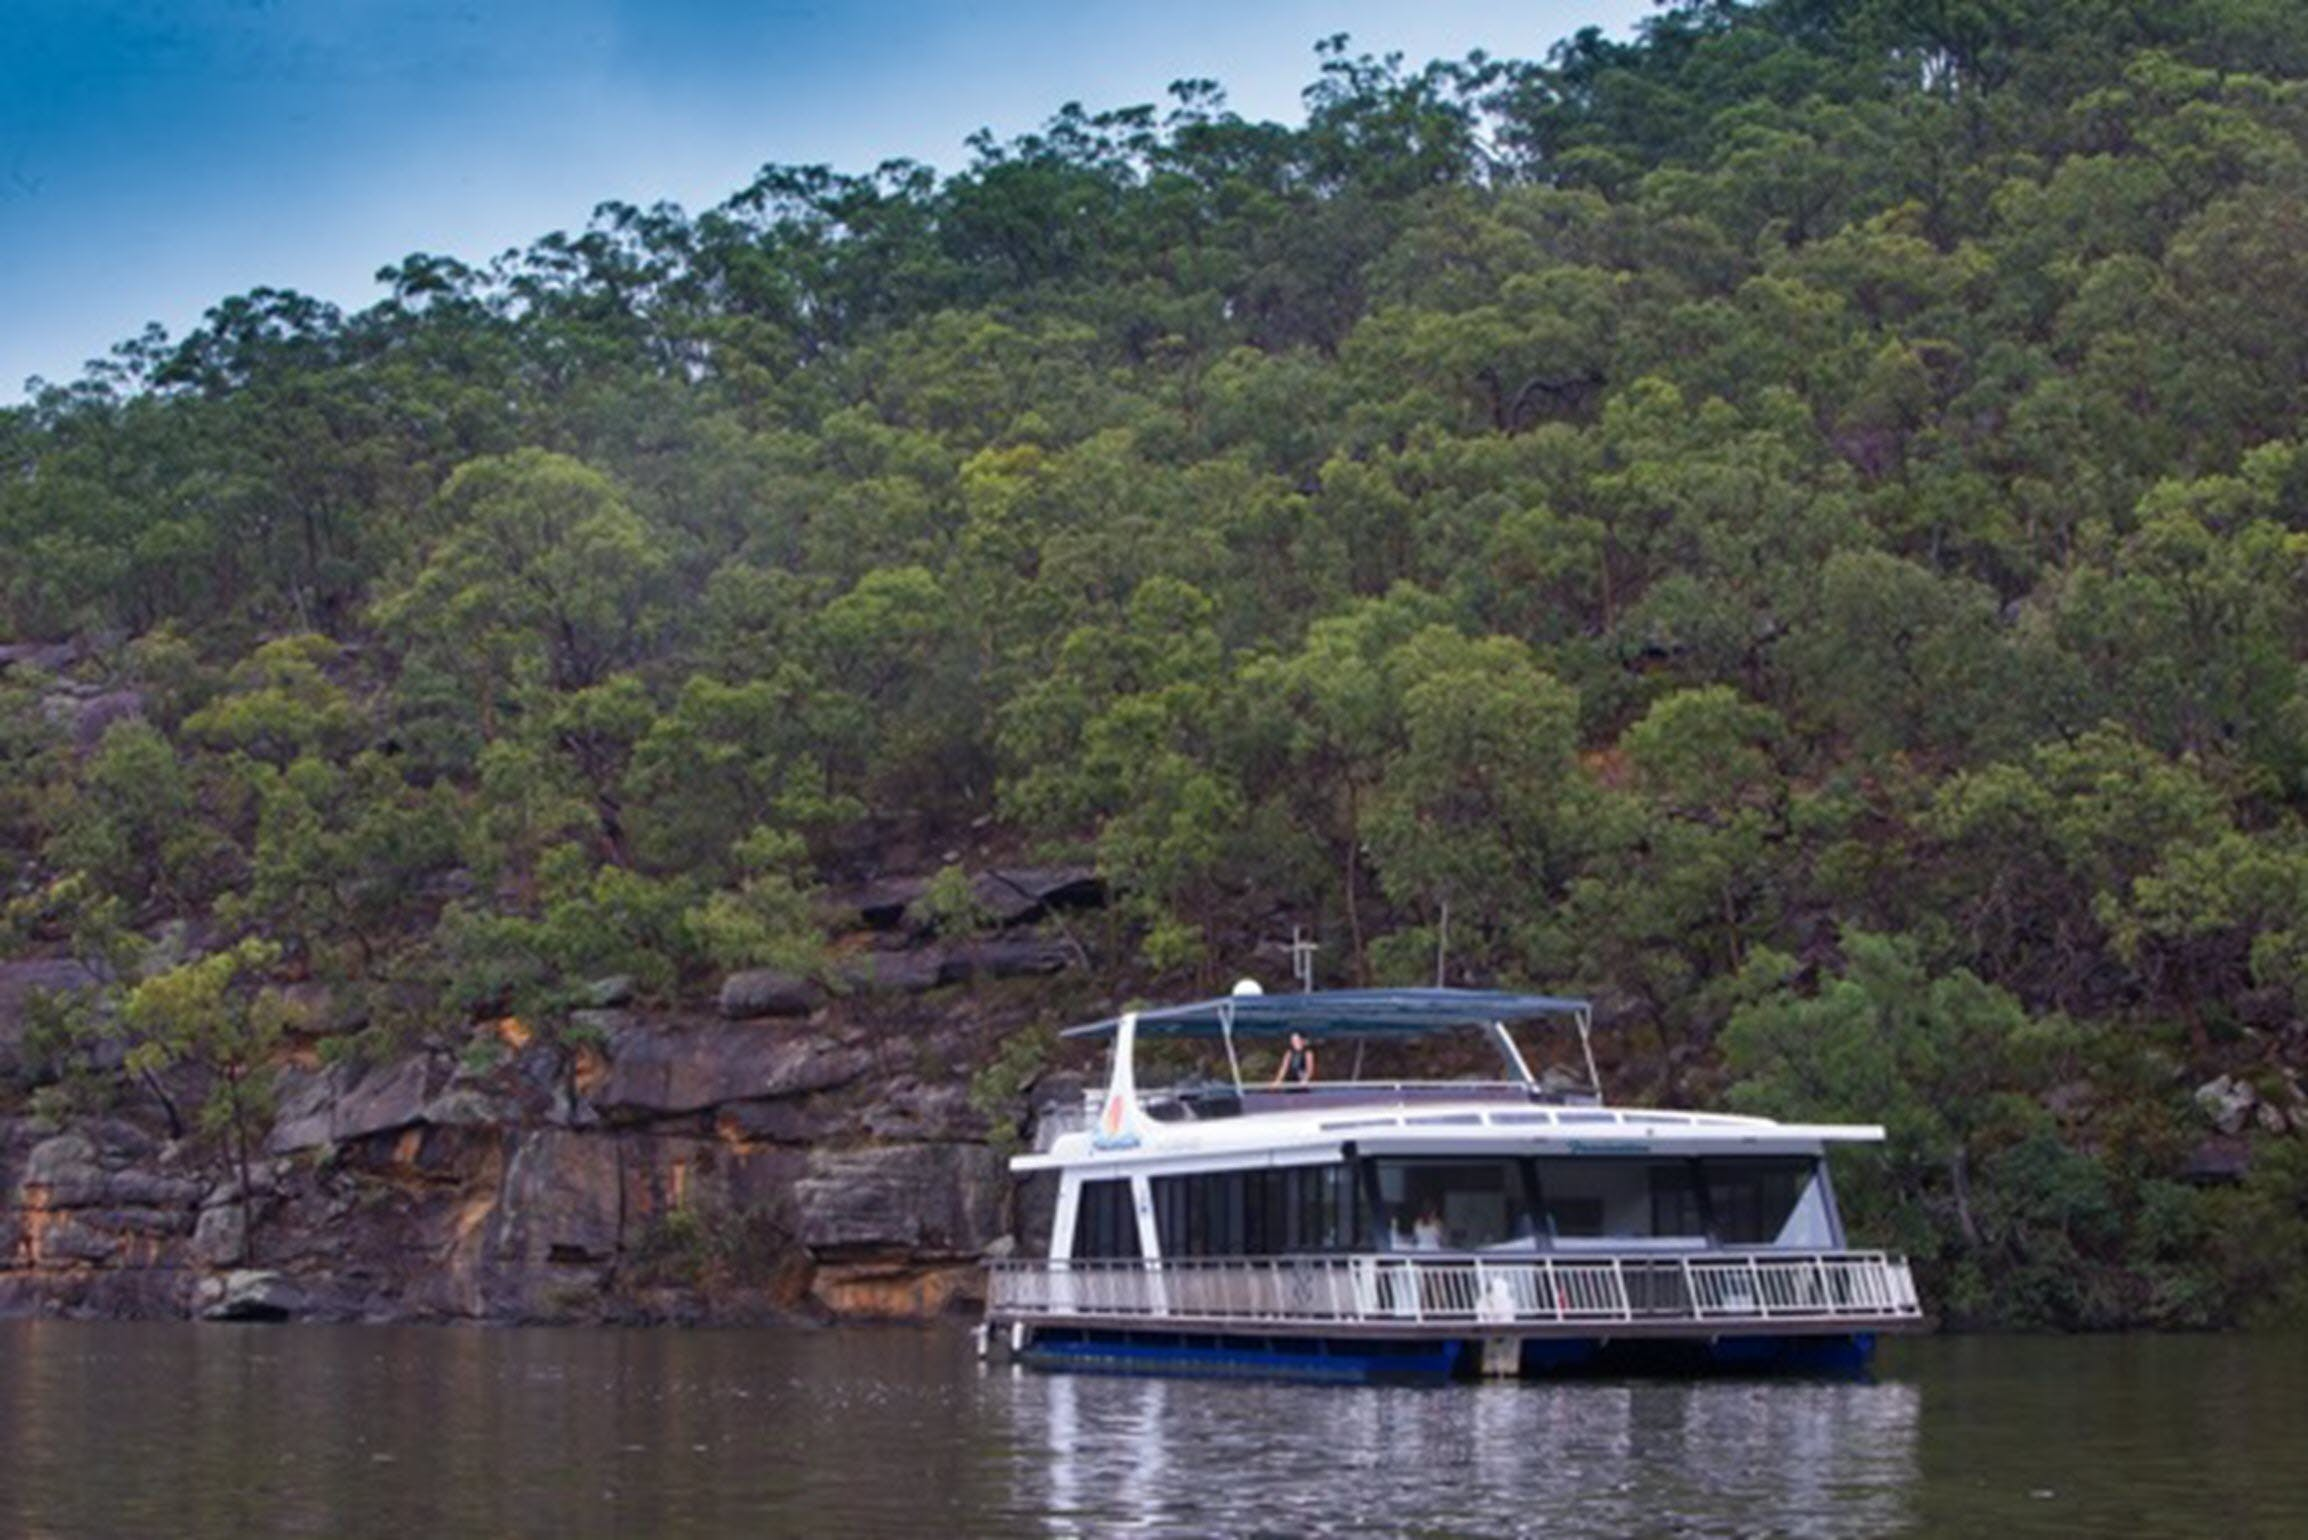 Able Hawkesbury River Houseboats - Kayaks and Dayboats - Accommodation Port Hedland